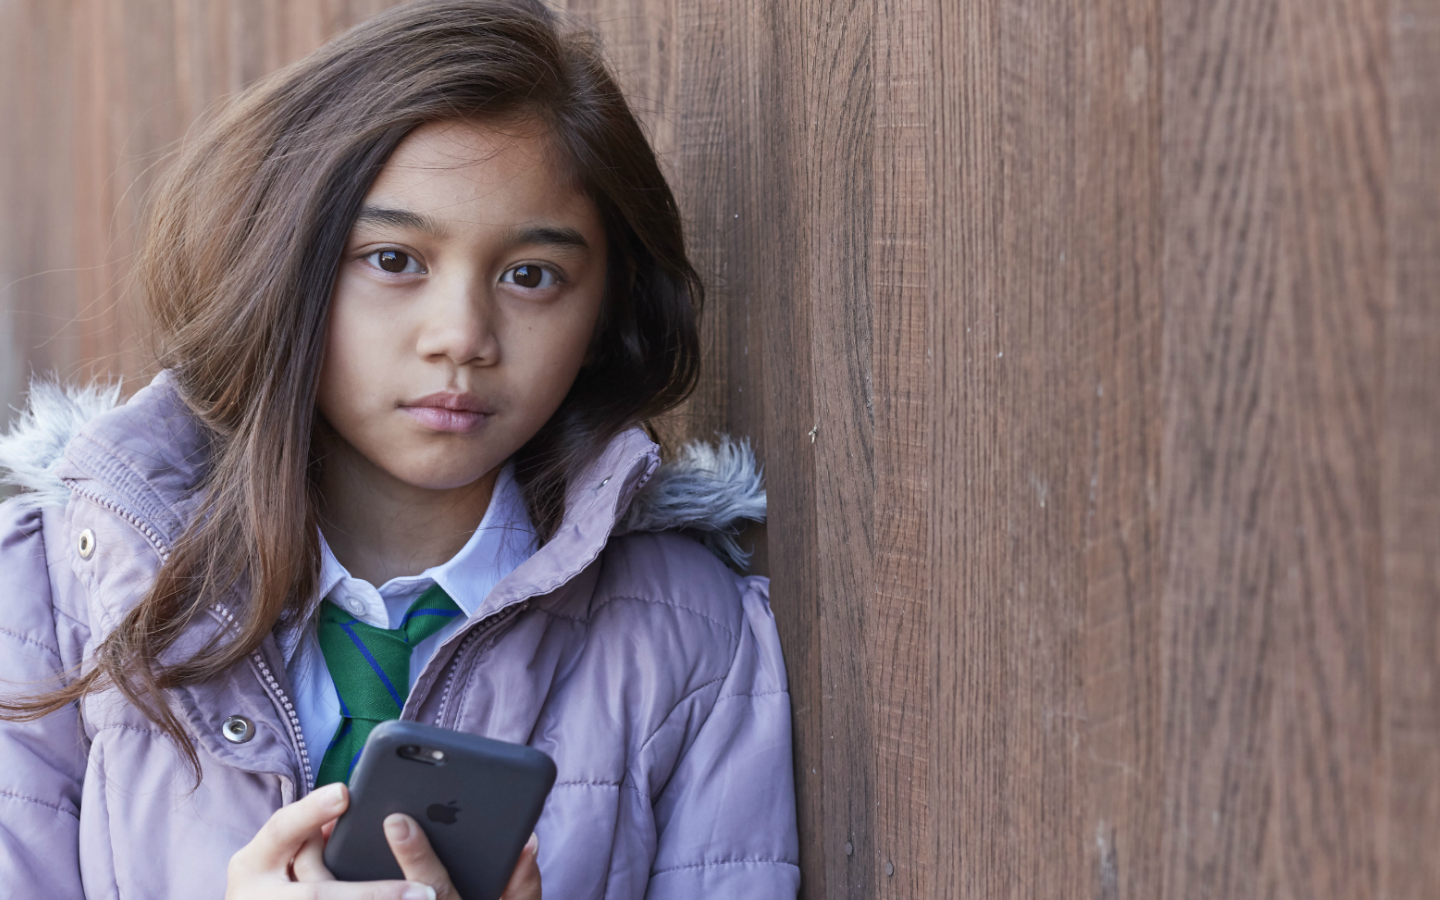 Young girl standing outside holding phone